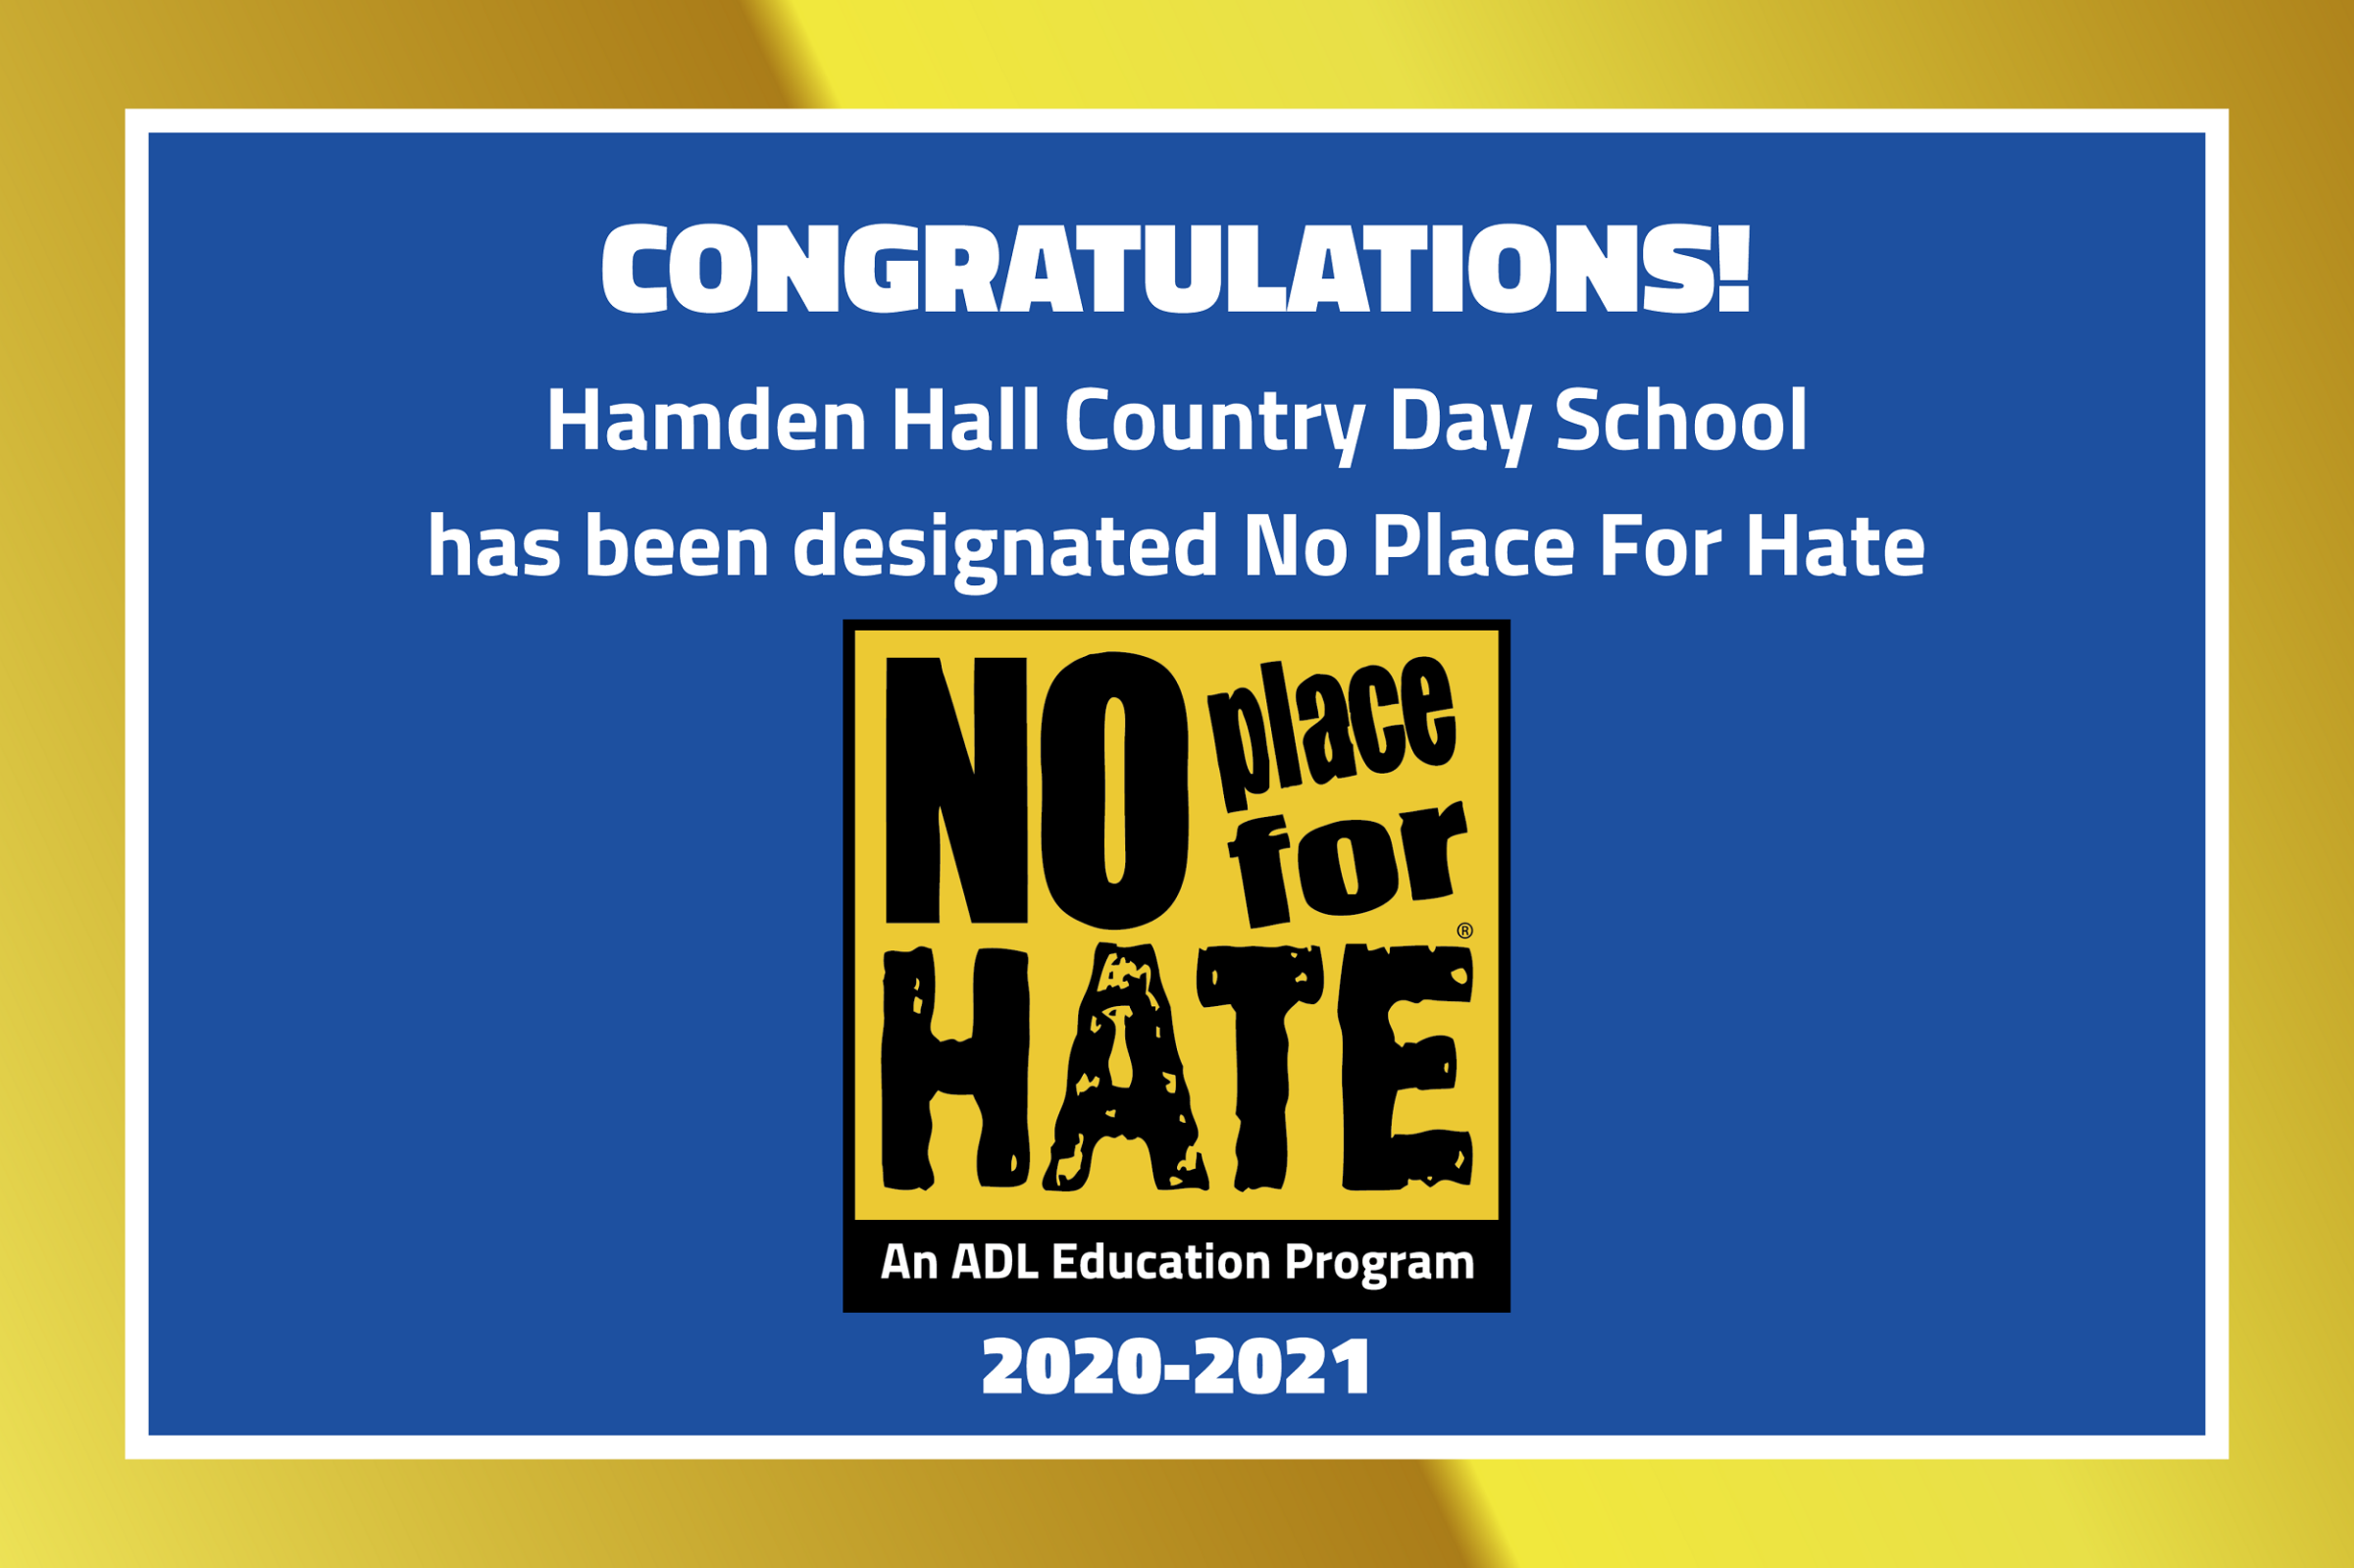 Hamden Hall is No Place For Hate!